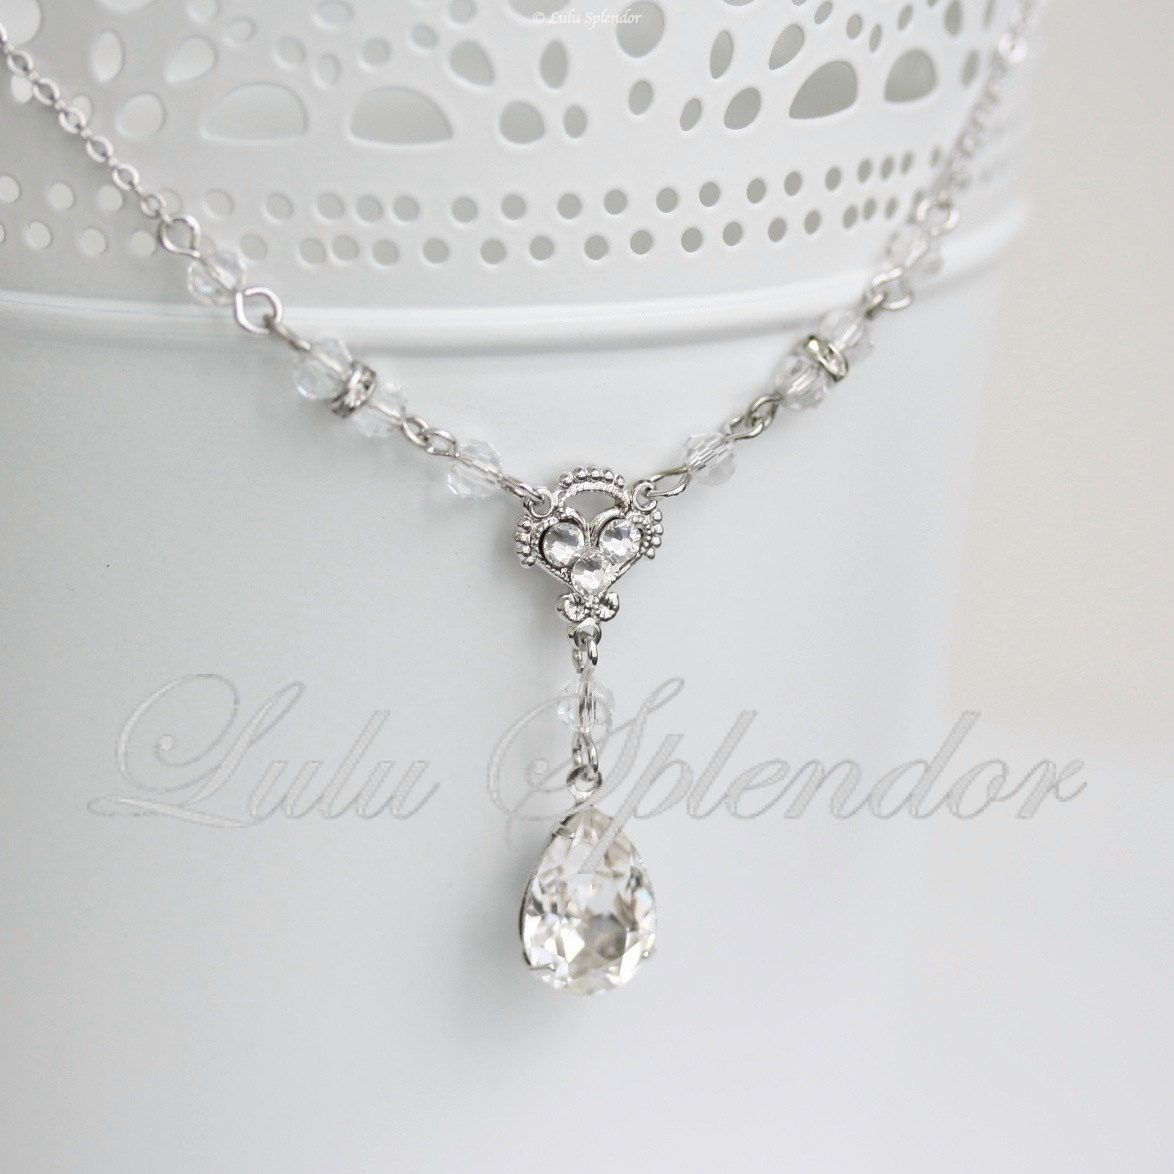 Wedding Necklace Crystal Pendant Chain Rhinestone Drop Bridal